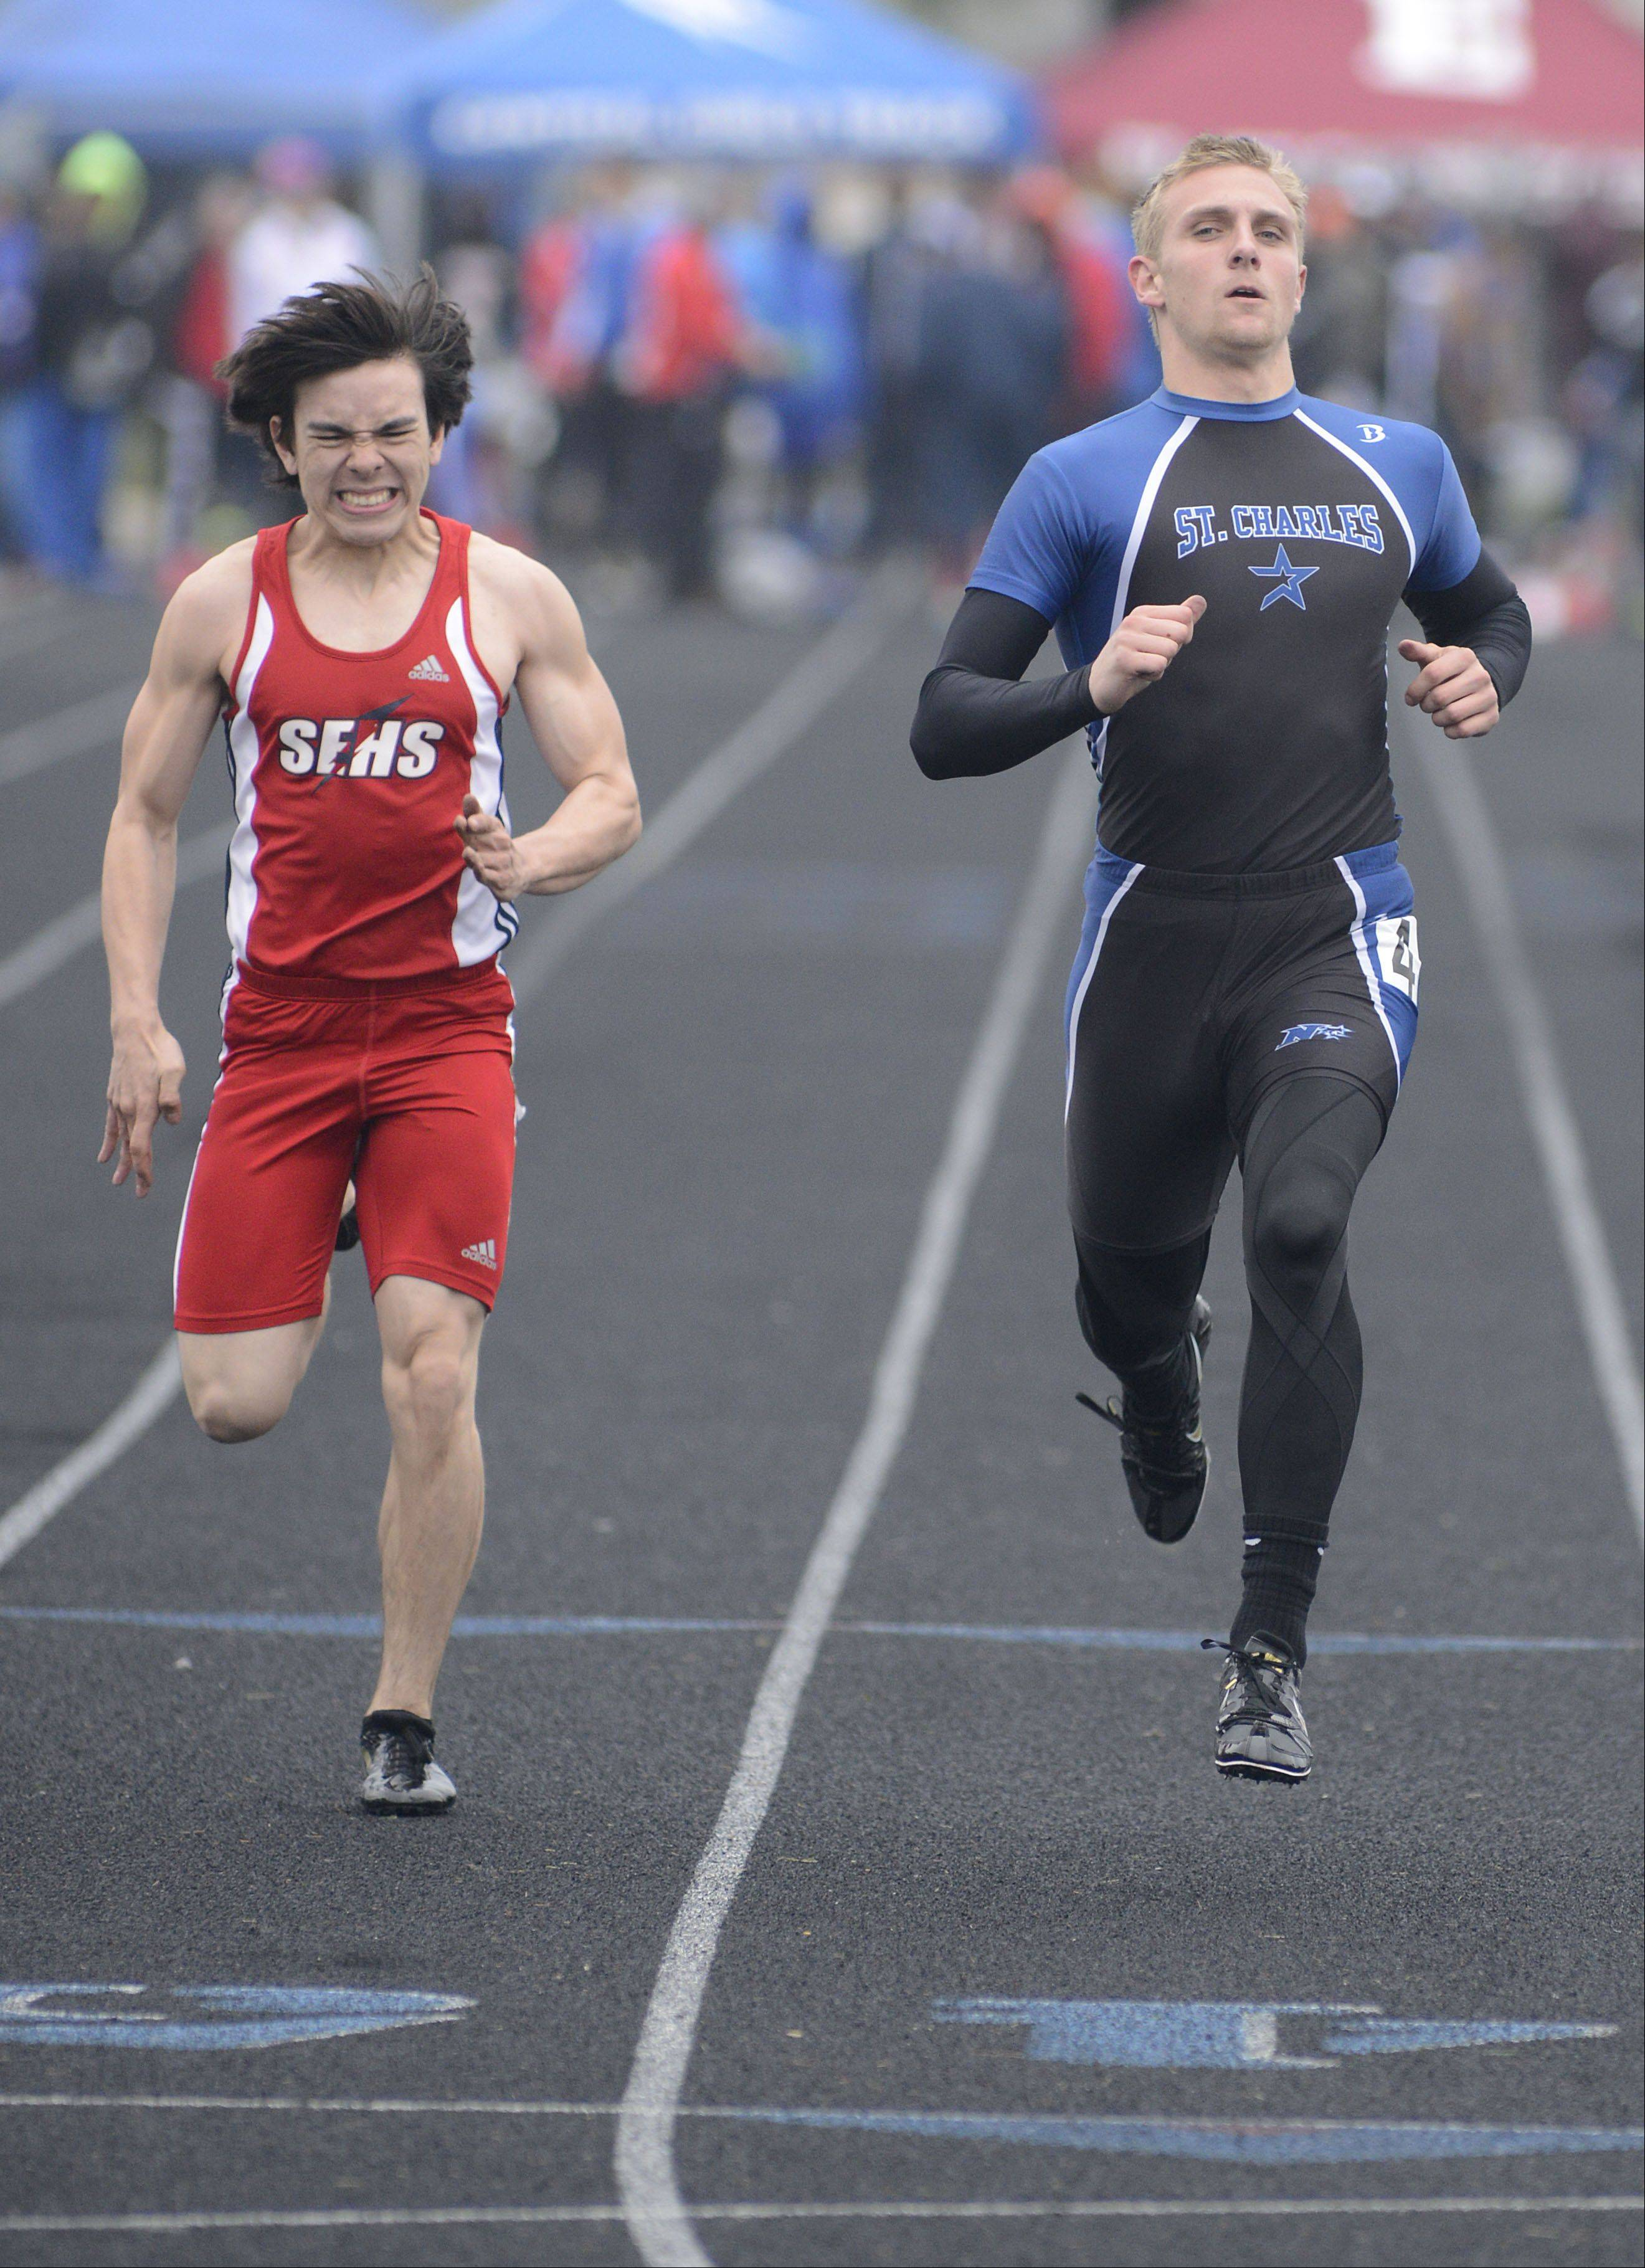 South Elgin's Dan Boice and St. Charles North's Connor Larson in the third heat of the 100-meter dash prelims at the Kane County boys track meet at Burlington Central on Friday.